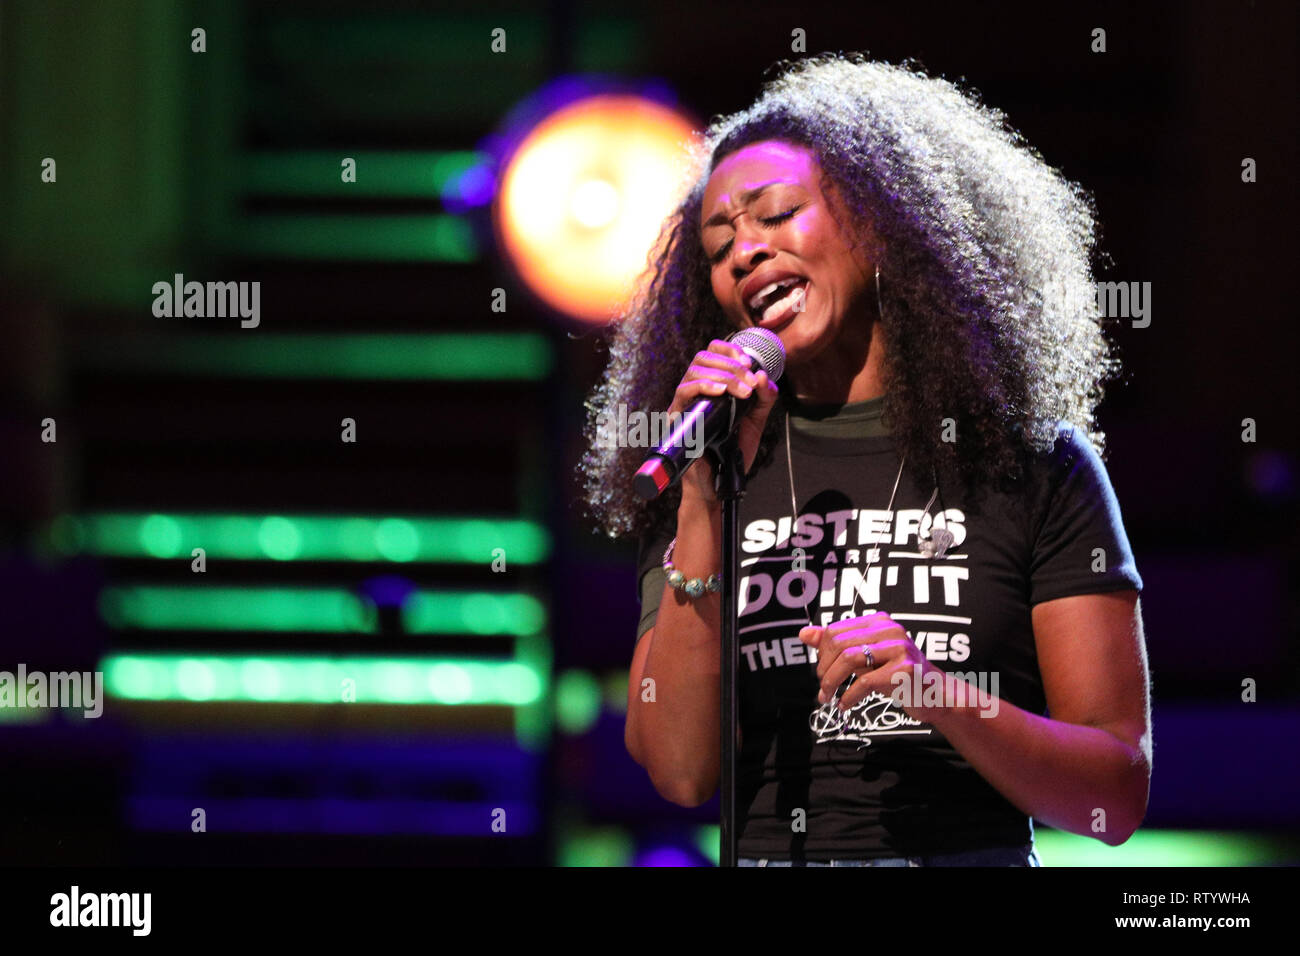 London, UK, 3rd Mar 2019. Singer Beverley Knight performs passionately. March4Women is CARE International's annual month of action for gender equality. This year's London event is held at Central Hall, rather than as an outdoor rally, and features speeches, debate and musical performances from celebrity supporters. Credit: Imageplotter/Alamy Live News - Stock Image